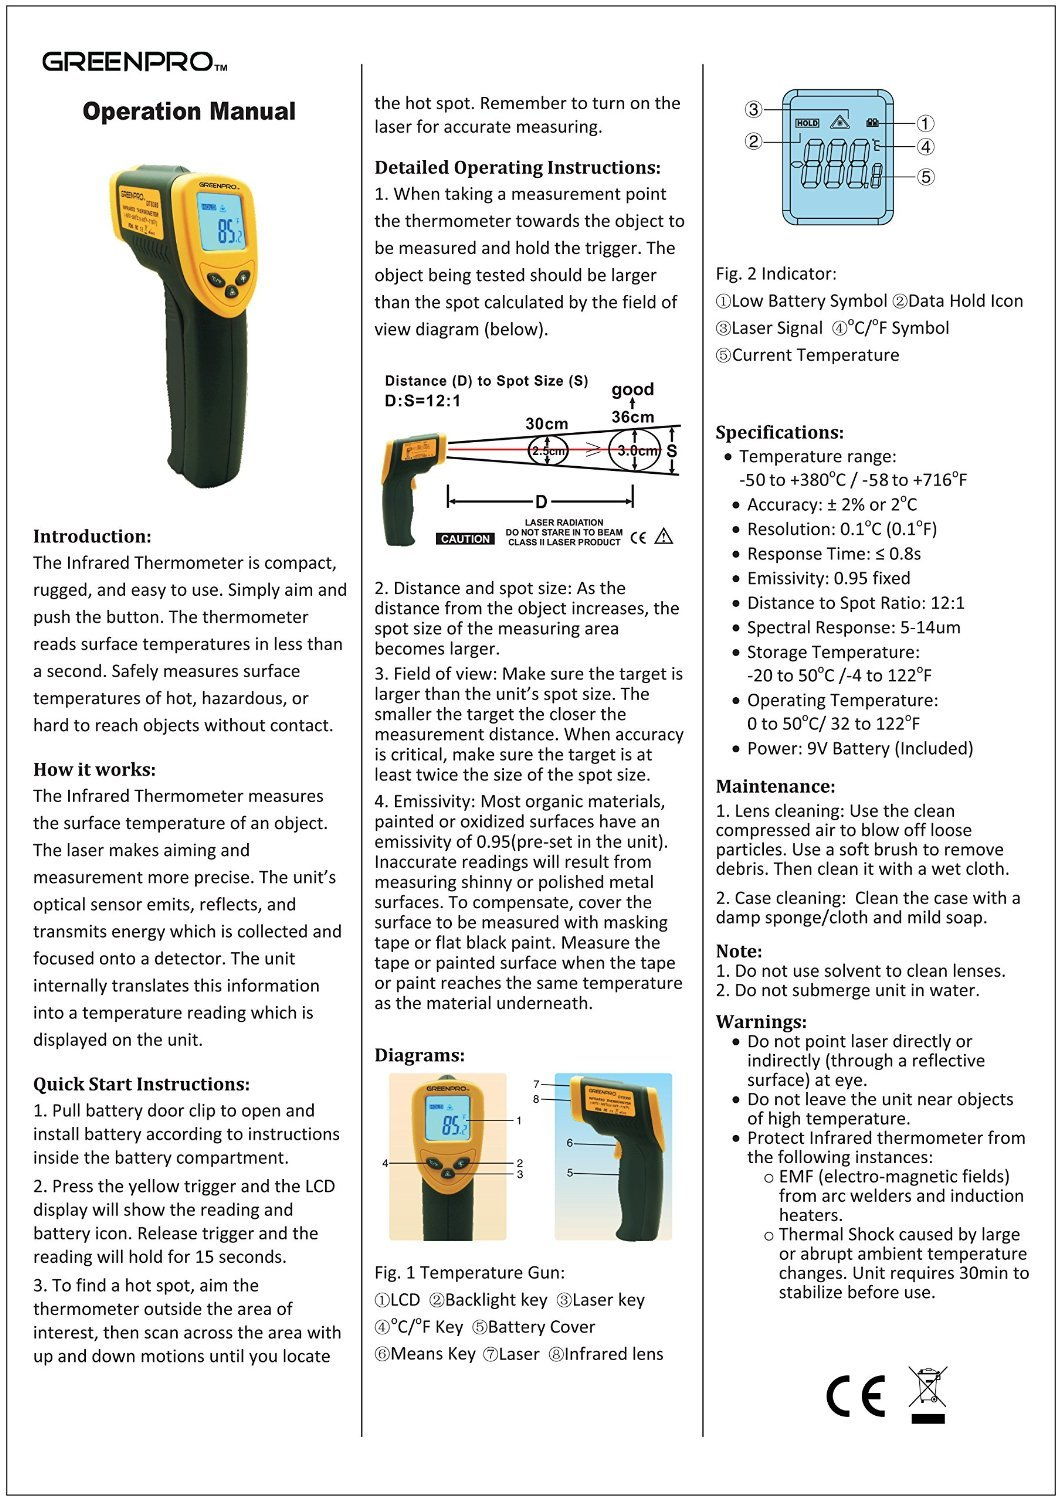 Greenpro Temperature Gun Non-Contact Infrared Thermometer (Black/Yellow)